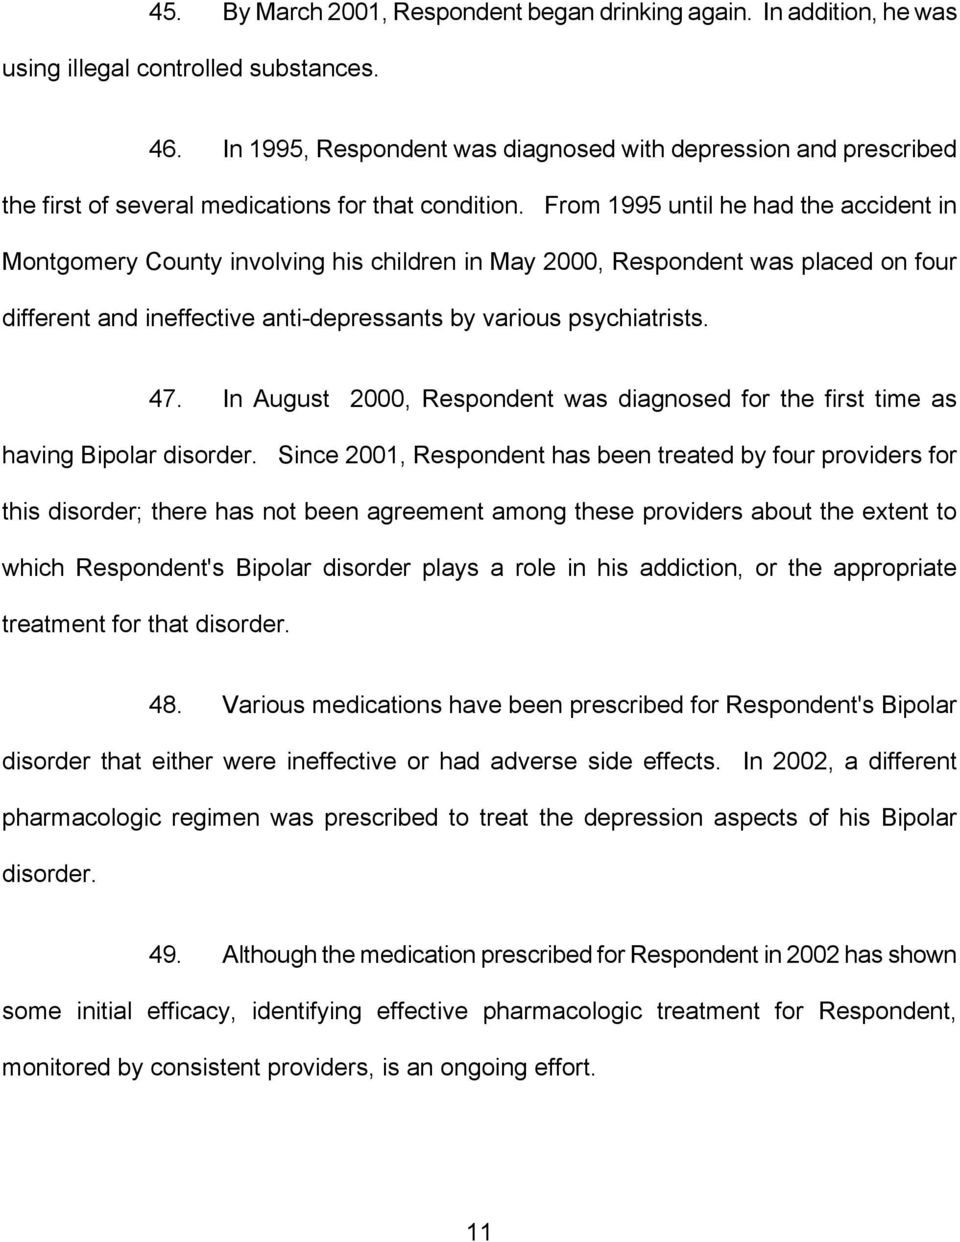 From 1995 until he had the accident in Montgomery County involving his children in May 2000, Respondent was placed on four different and ineffective anti-depressants by various psychiatrists. 47.